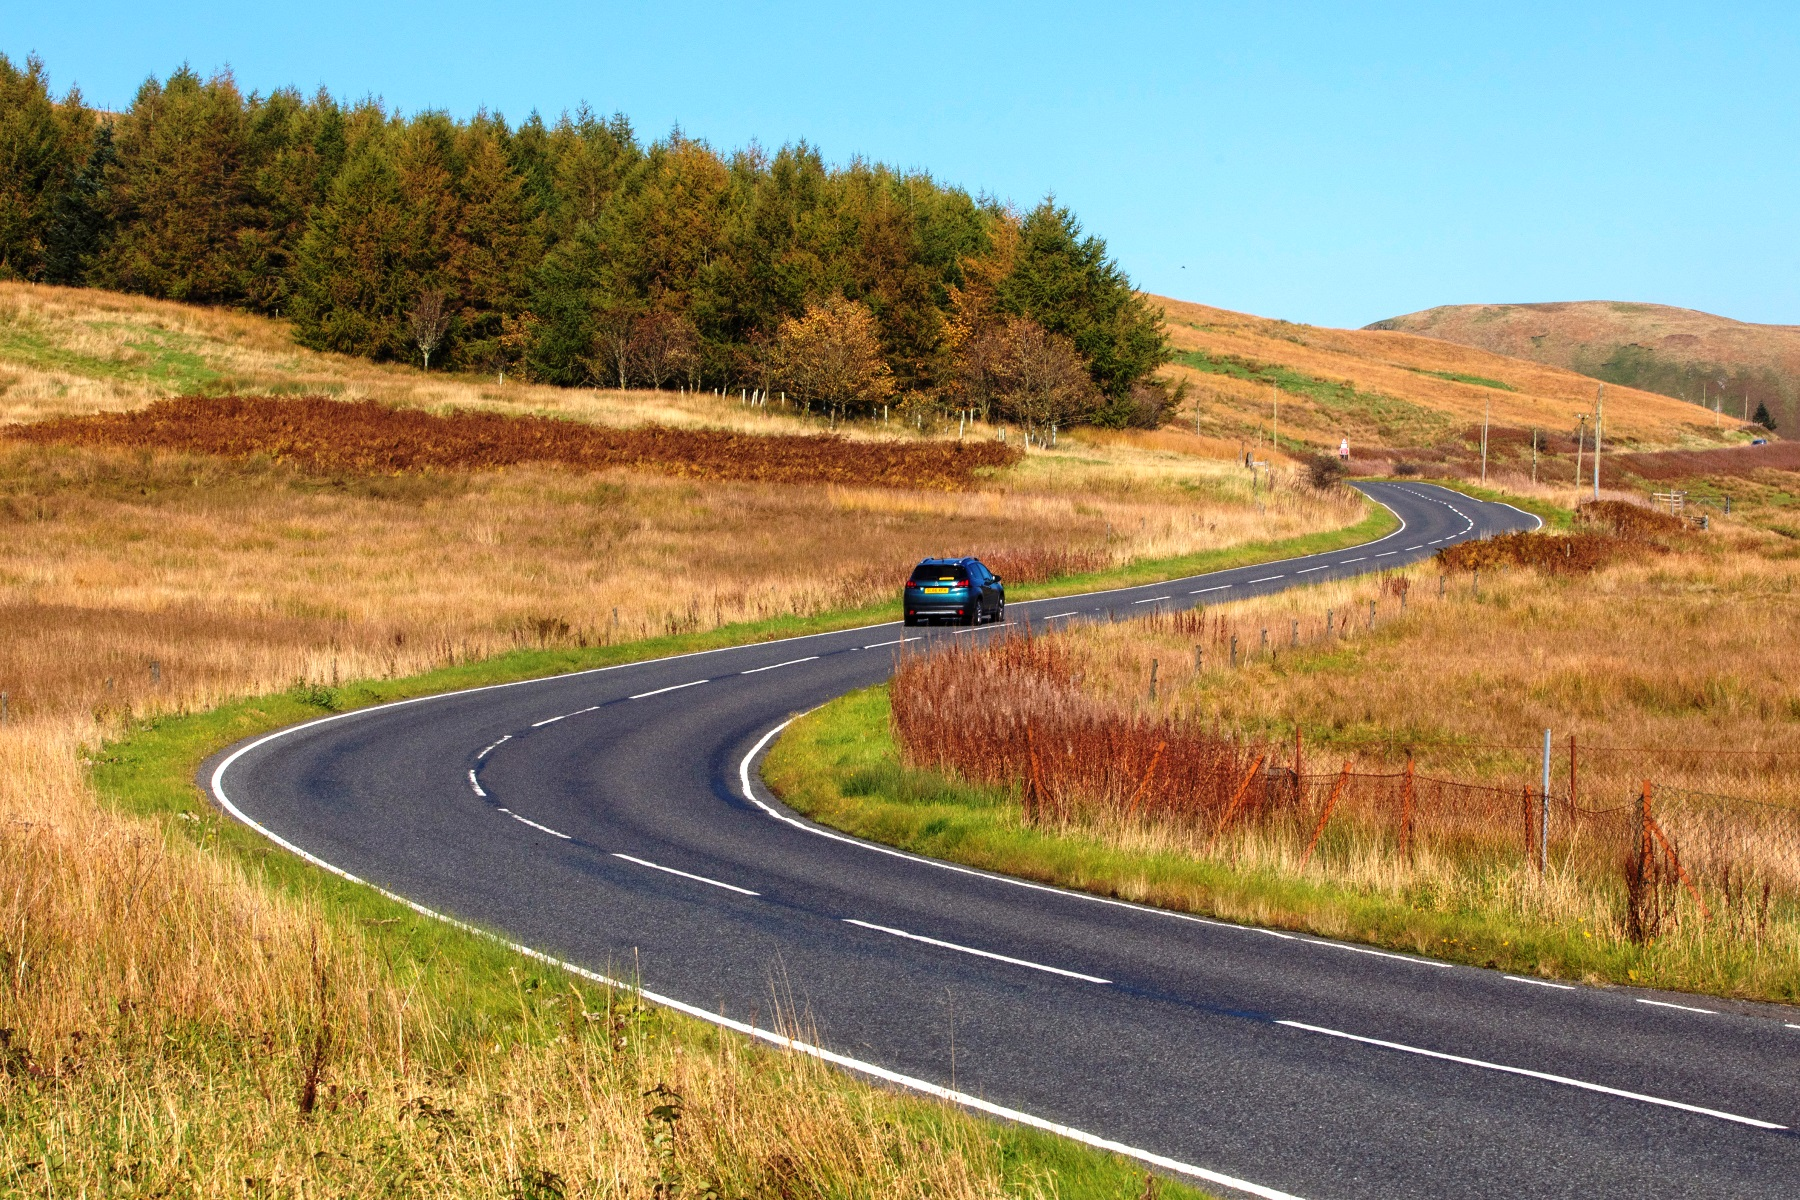 The-A701-from-Moffat-to-Edinburgh-in-the-Scottish-Borders-best-driving-roads